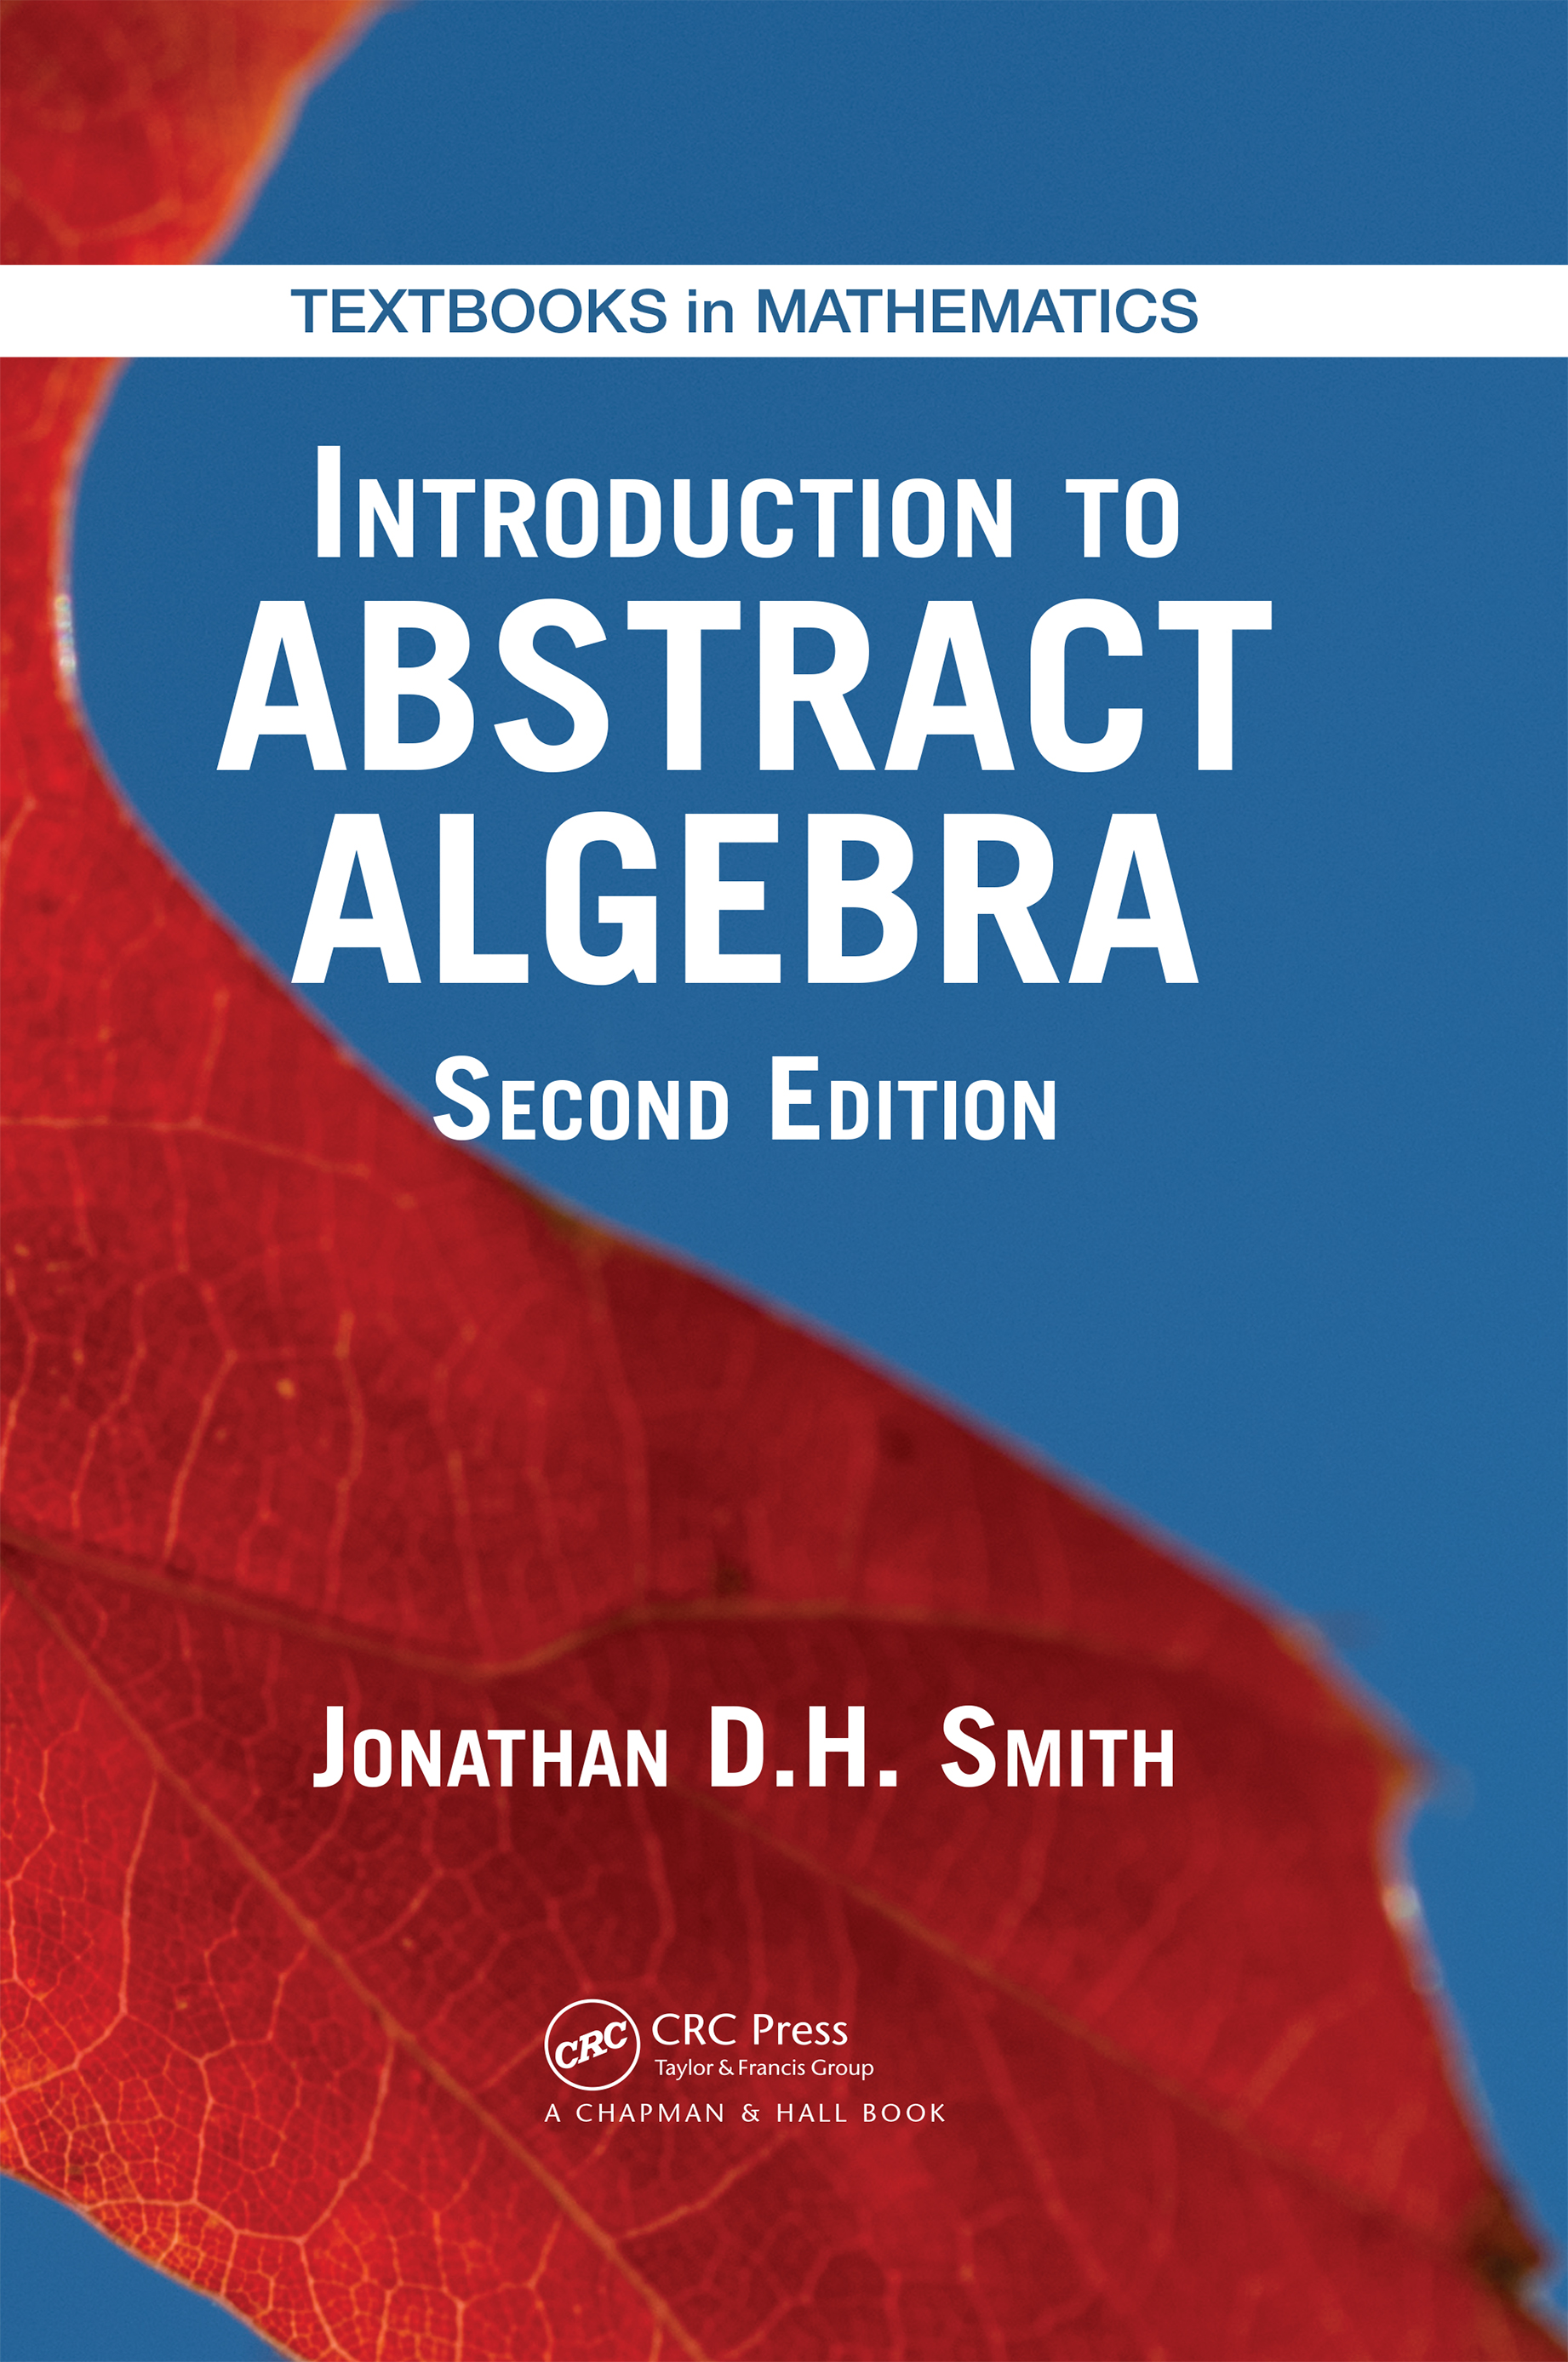 Introduction to Abstract Algebra, Second Edition book cover